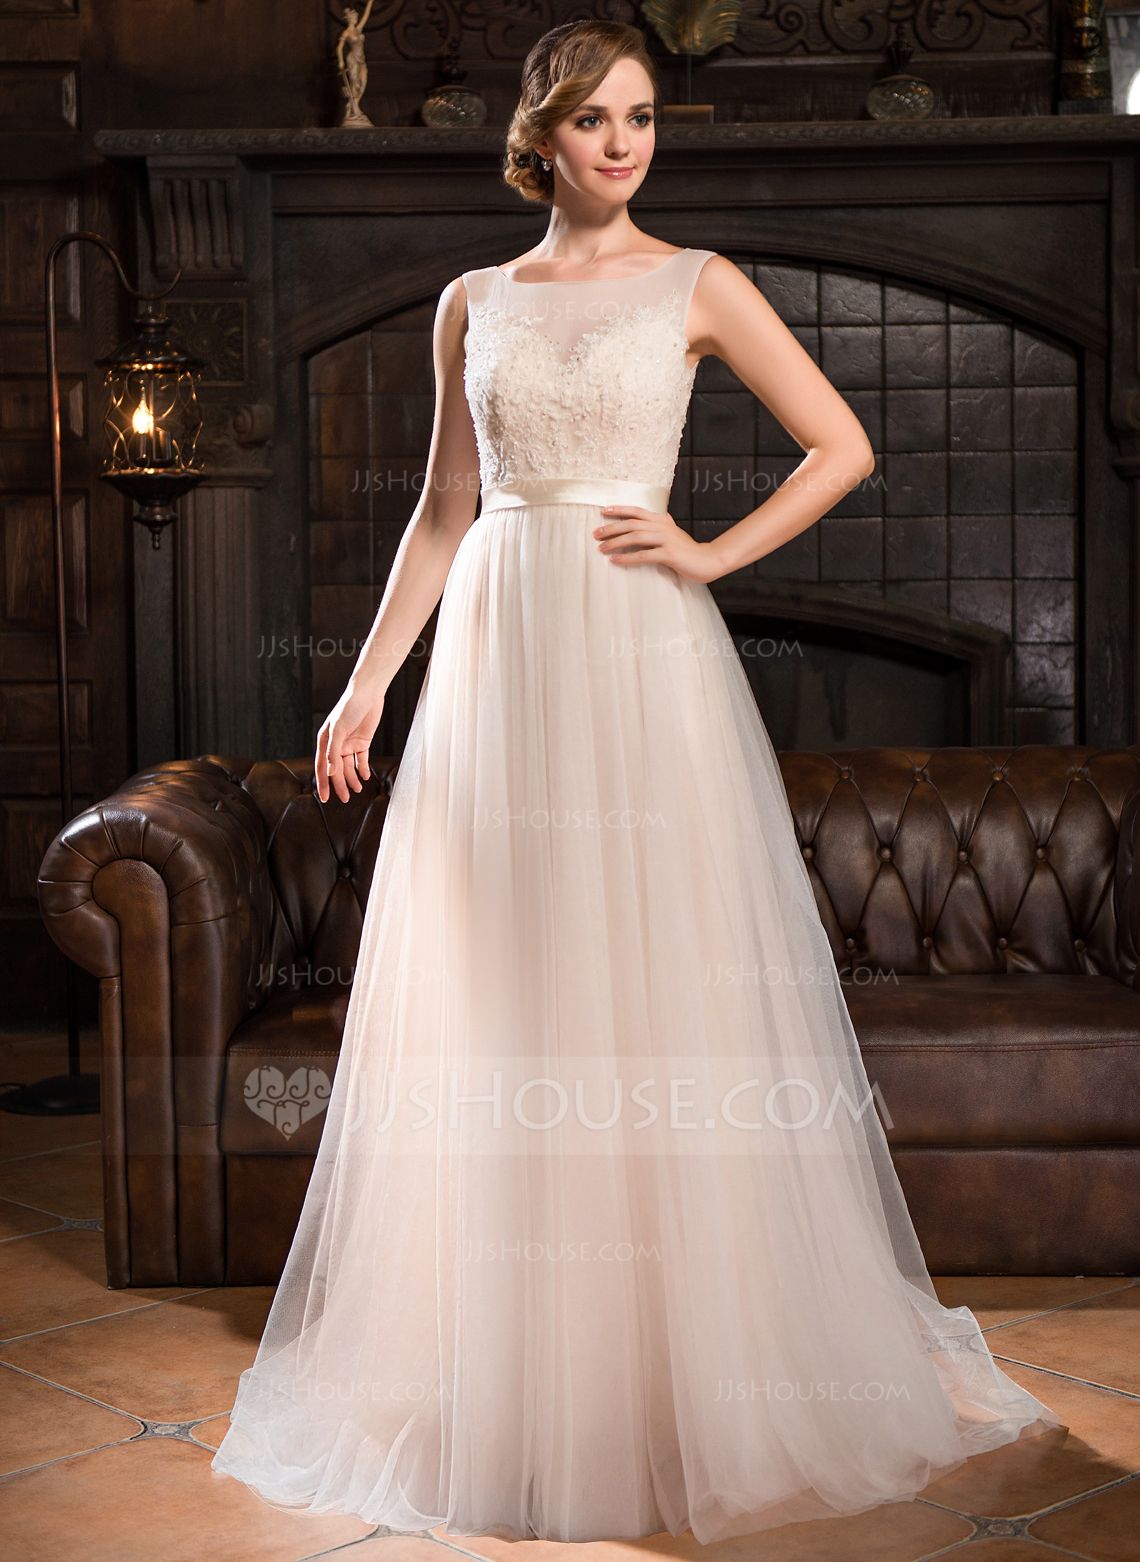 A Line Princess Scoop Neck Sweep Train Tulle Lace Wedding Dress With Beading Sequins g jjs house wedding dresses Home Wedding Dresses Loading zoom